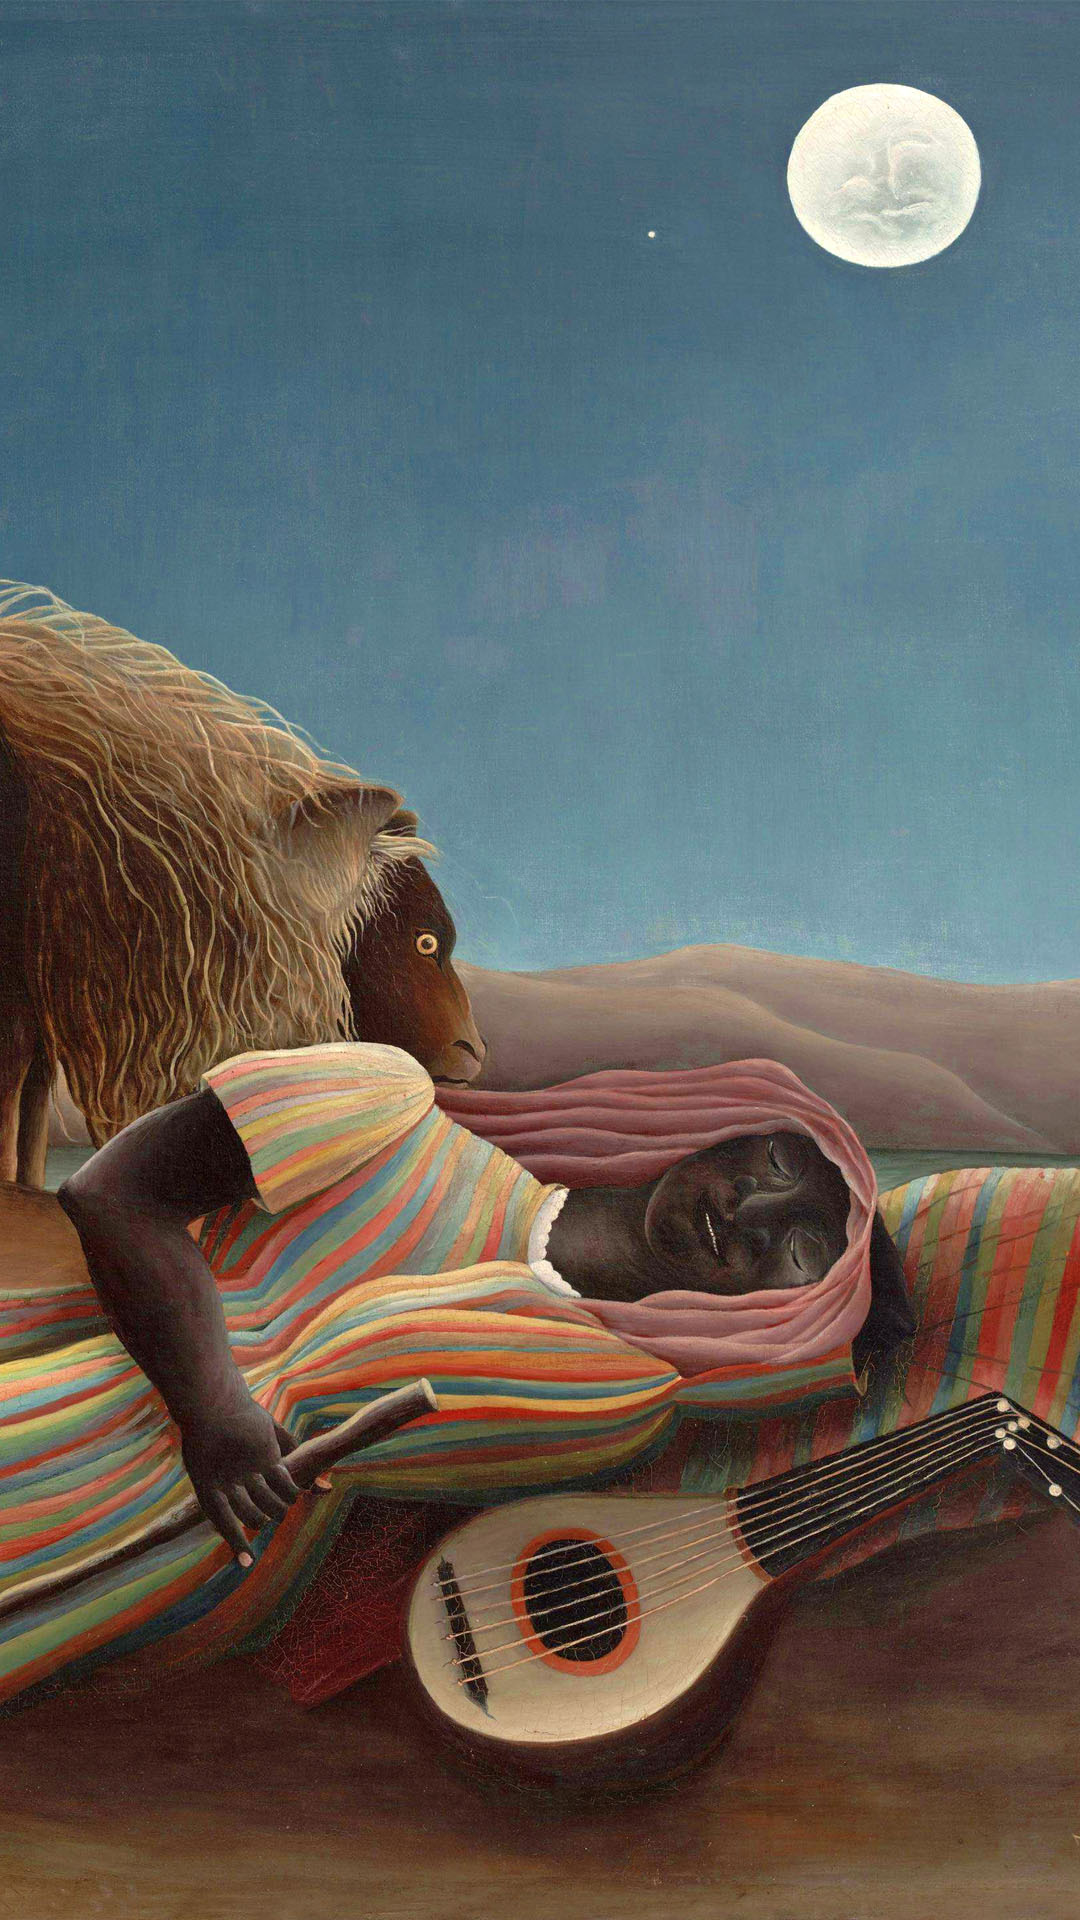 Henri Rousseau - The Sleeping Gypsy 1080x1920